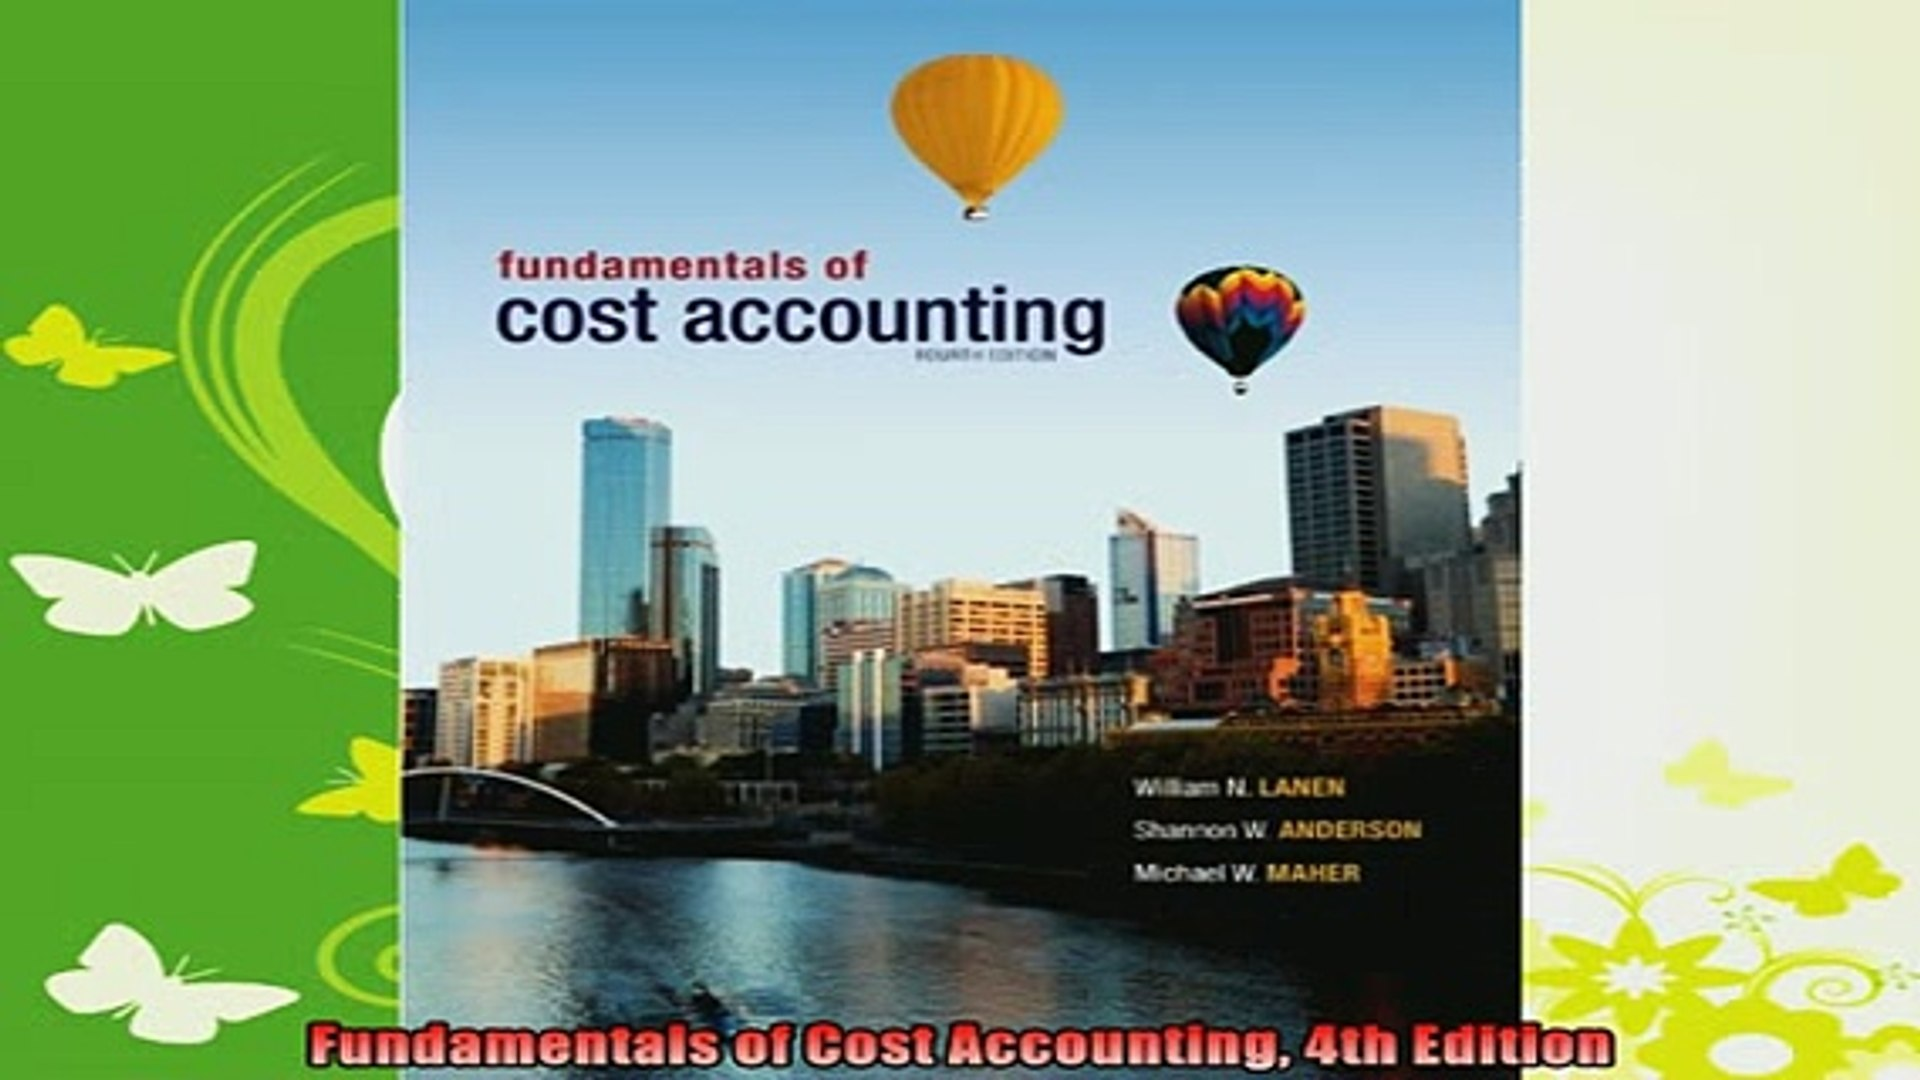 Fundamentals of Cost Accounting (4th Edition)